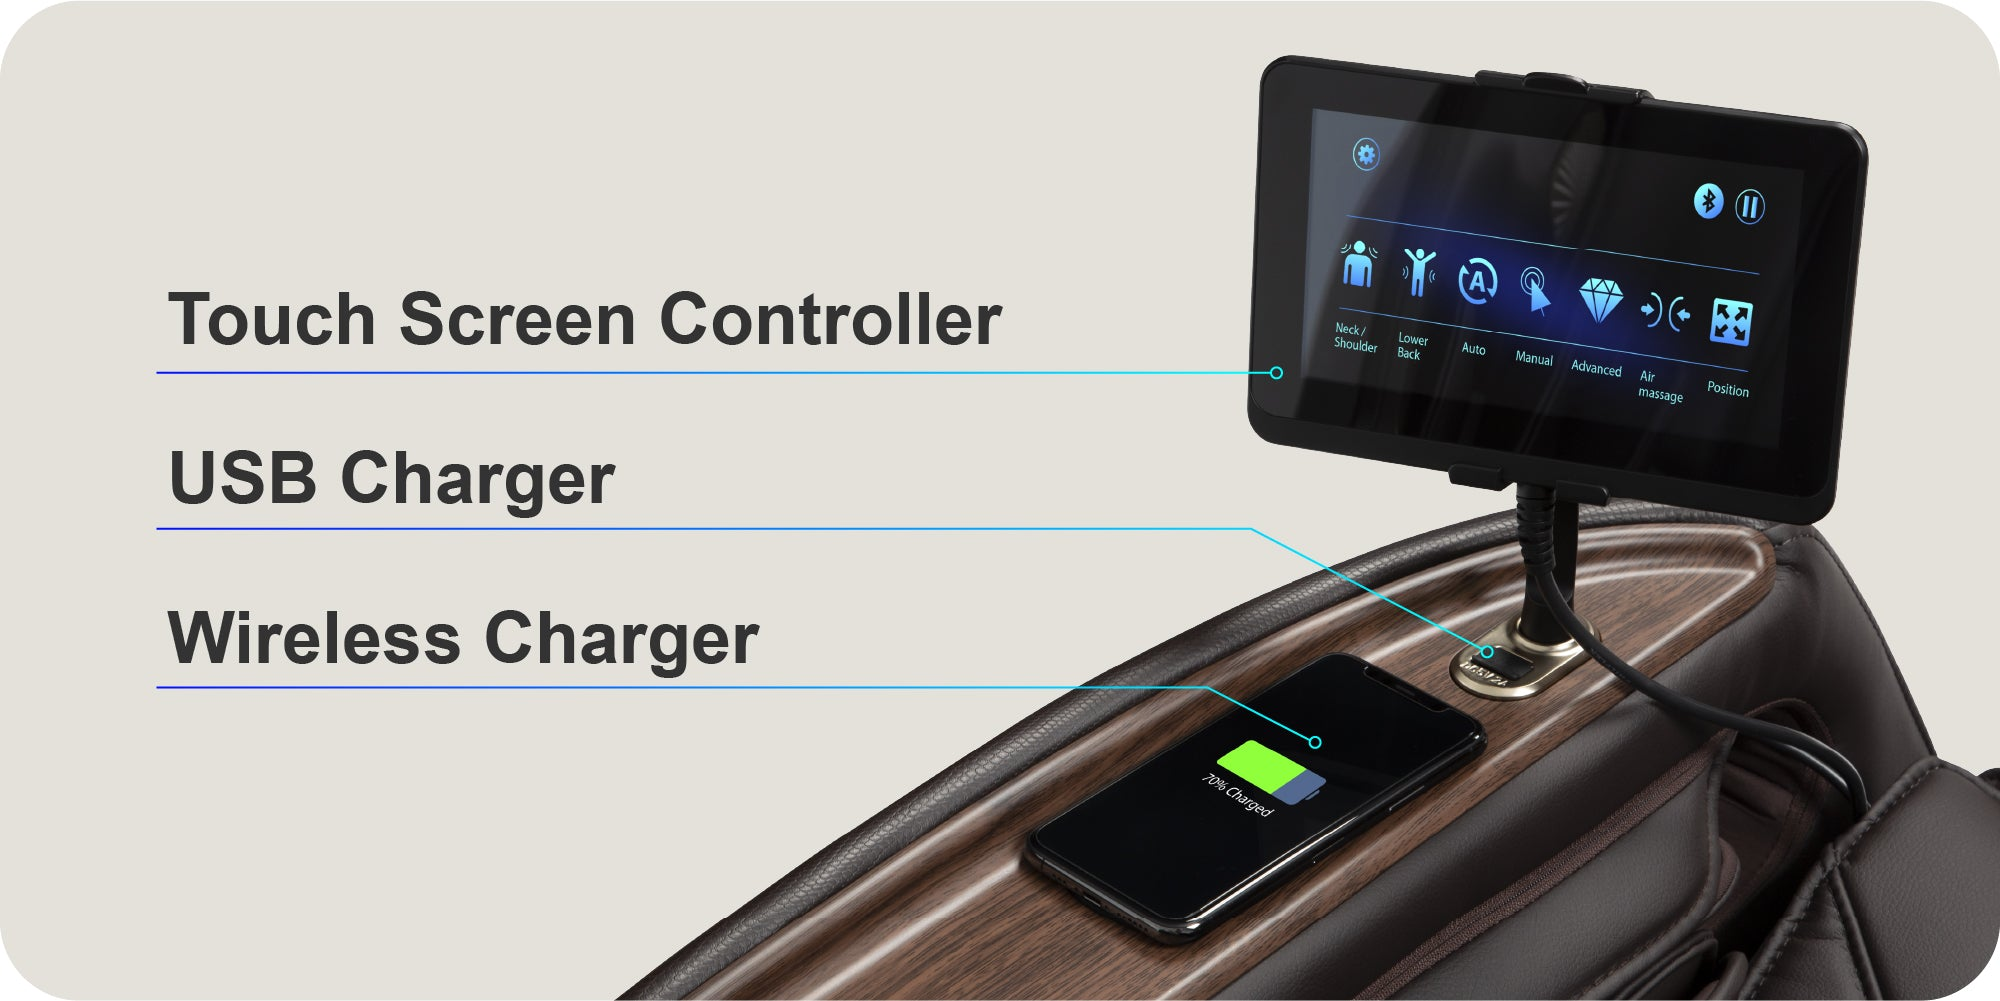 touch screen, usb charger, wireless charger